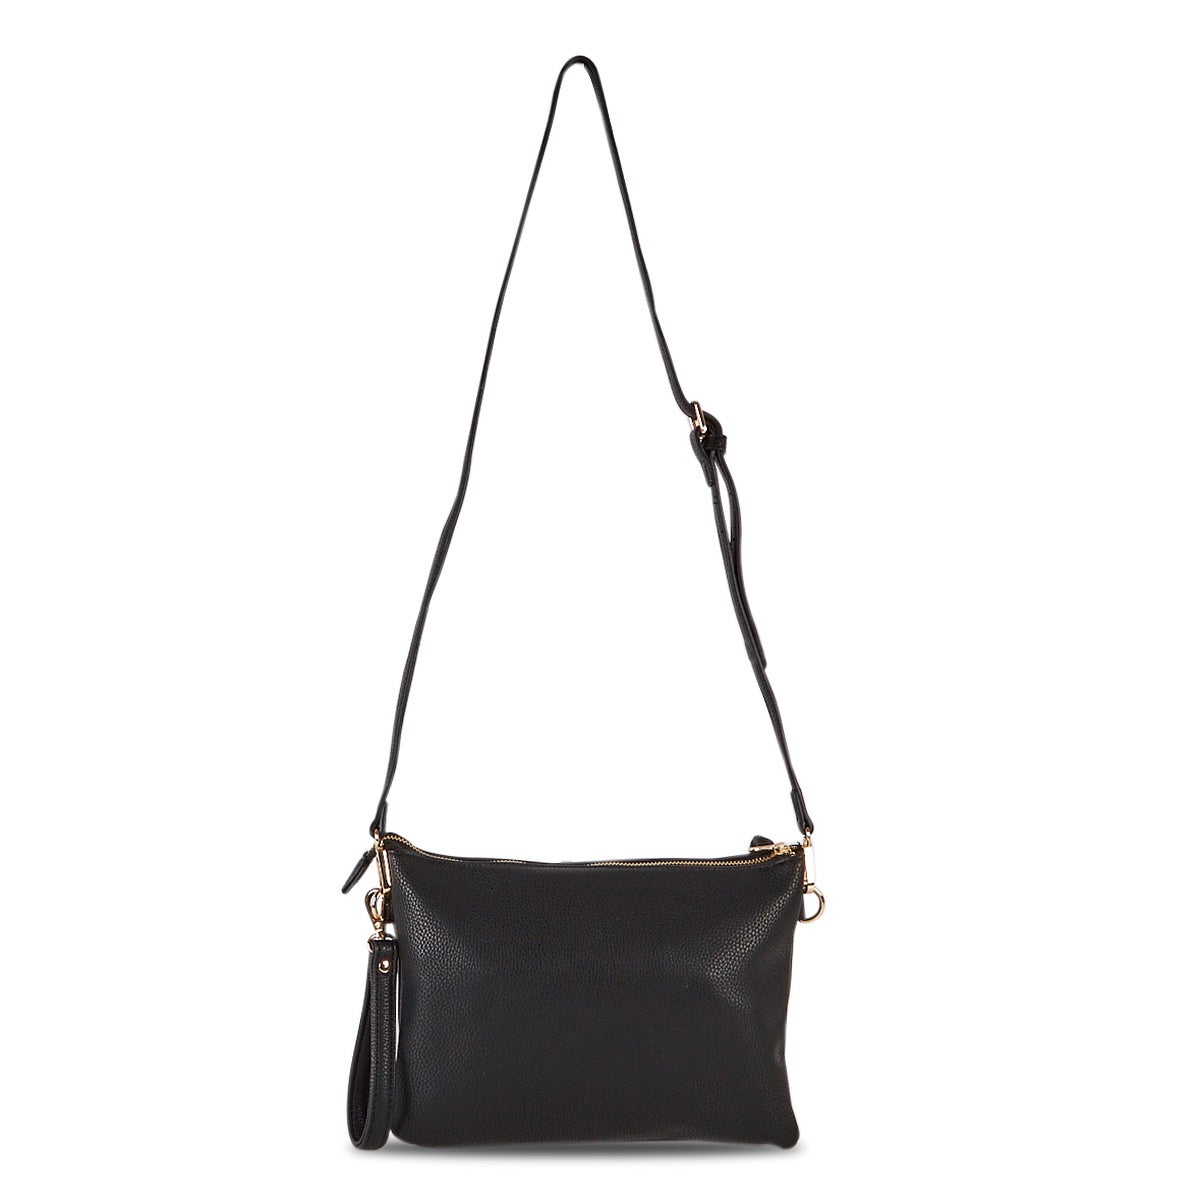 Lds blk cross body wristlet clutch